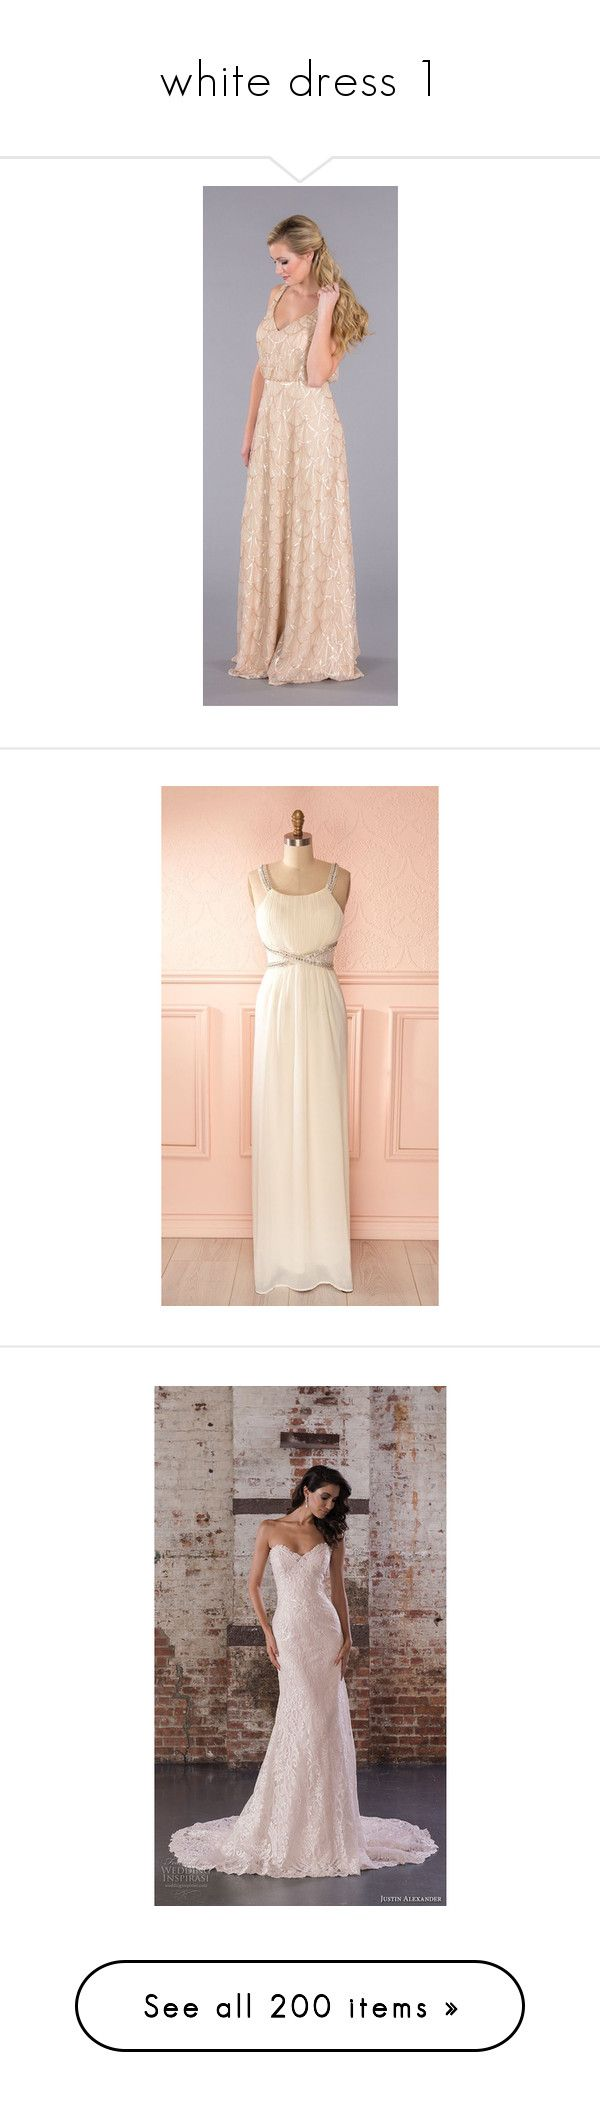 """""""white dress 1"""" by rhianna1996 ❤ liked on Polyvore featuring costumes, womens costumes, womens fairy costume, fairy princess costume, ladies pirate costume, womens pirate halloween costume, dresses, short dresses, vestidos and 13. dresses."""